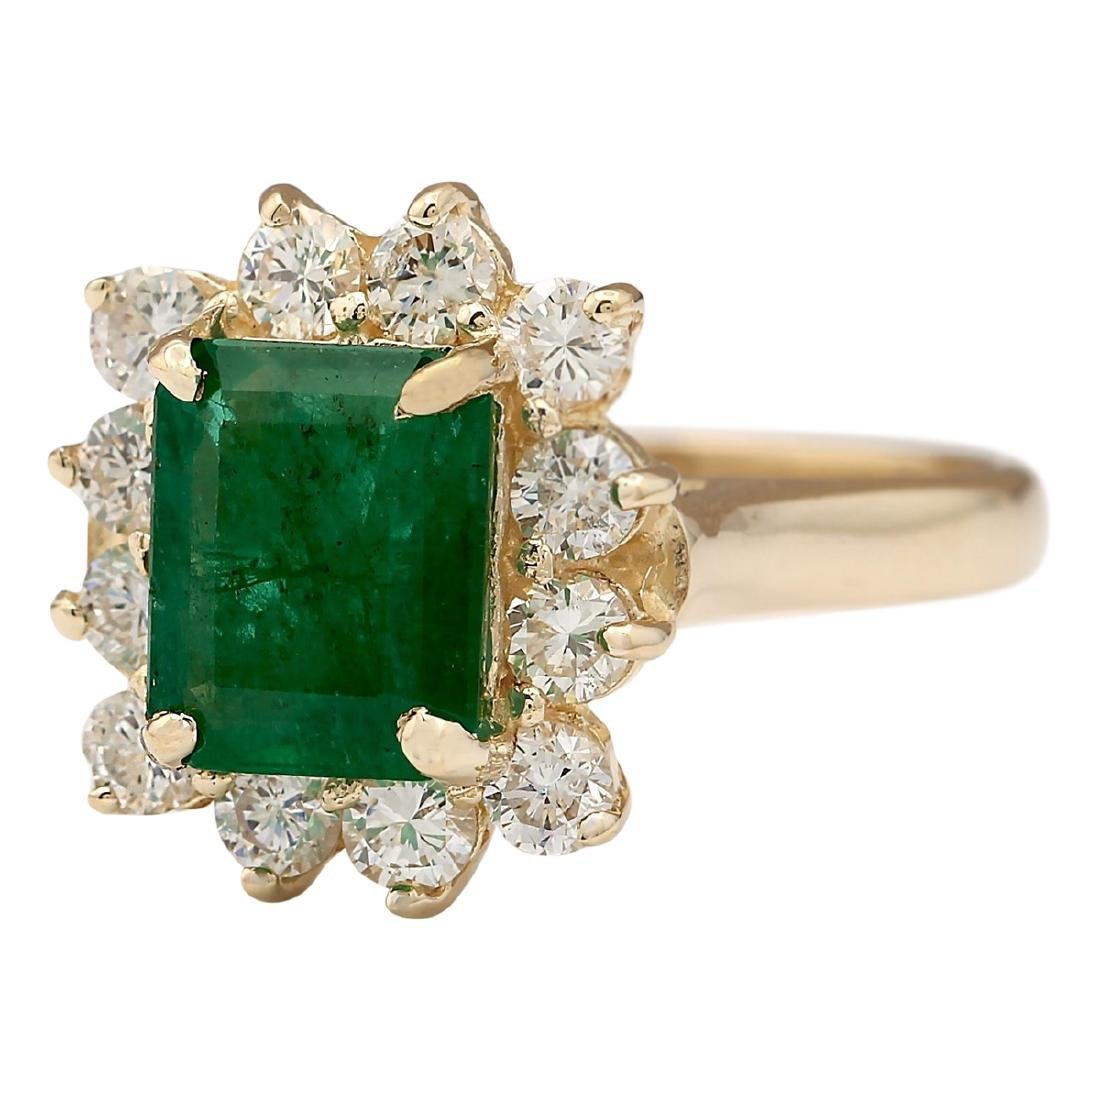 3.21 CTW Natural Emerald And Diamond Ring In 18K Yellow - 2